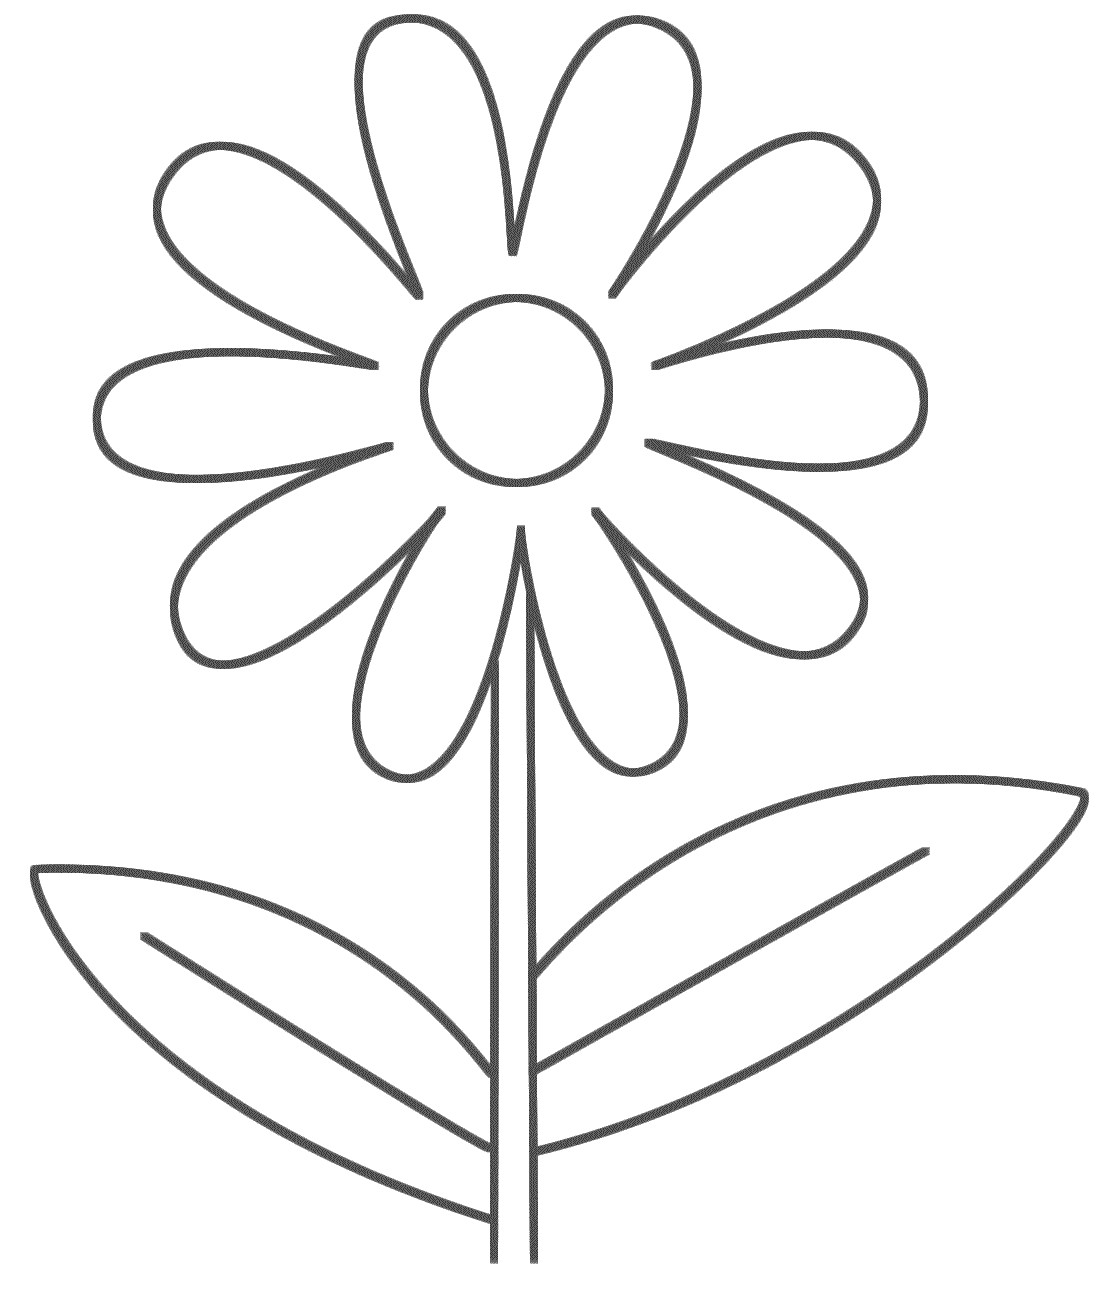 3d Flower Drawing at GetDrawings.com | Free for personal use 3d ...